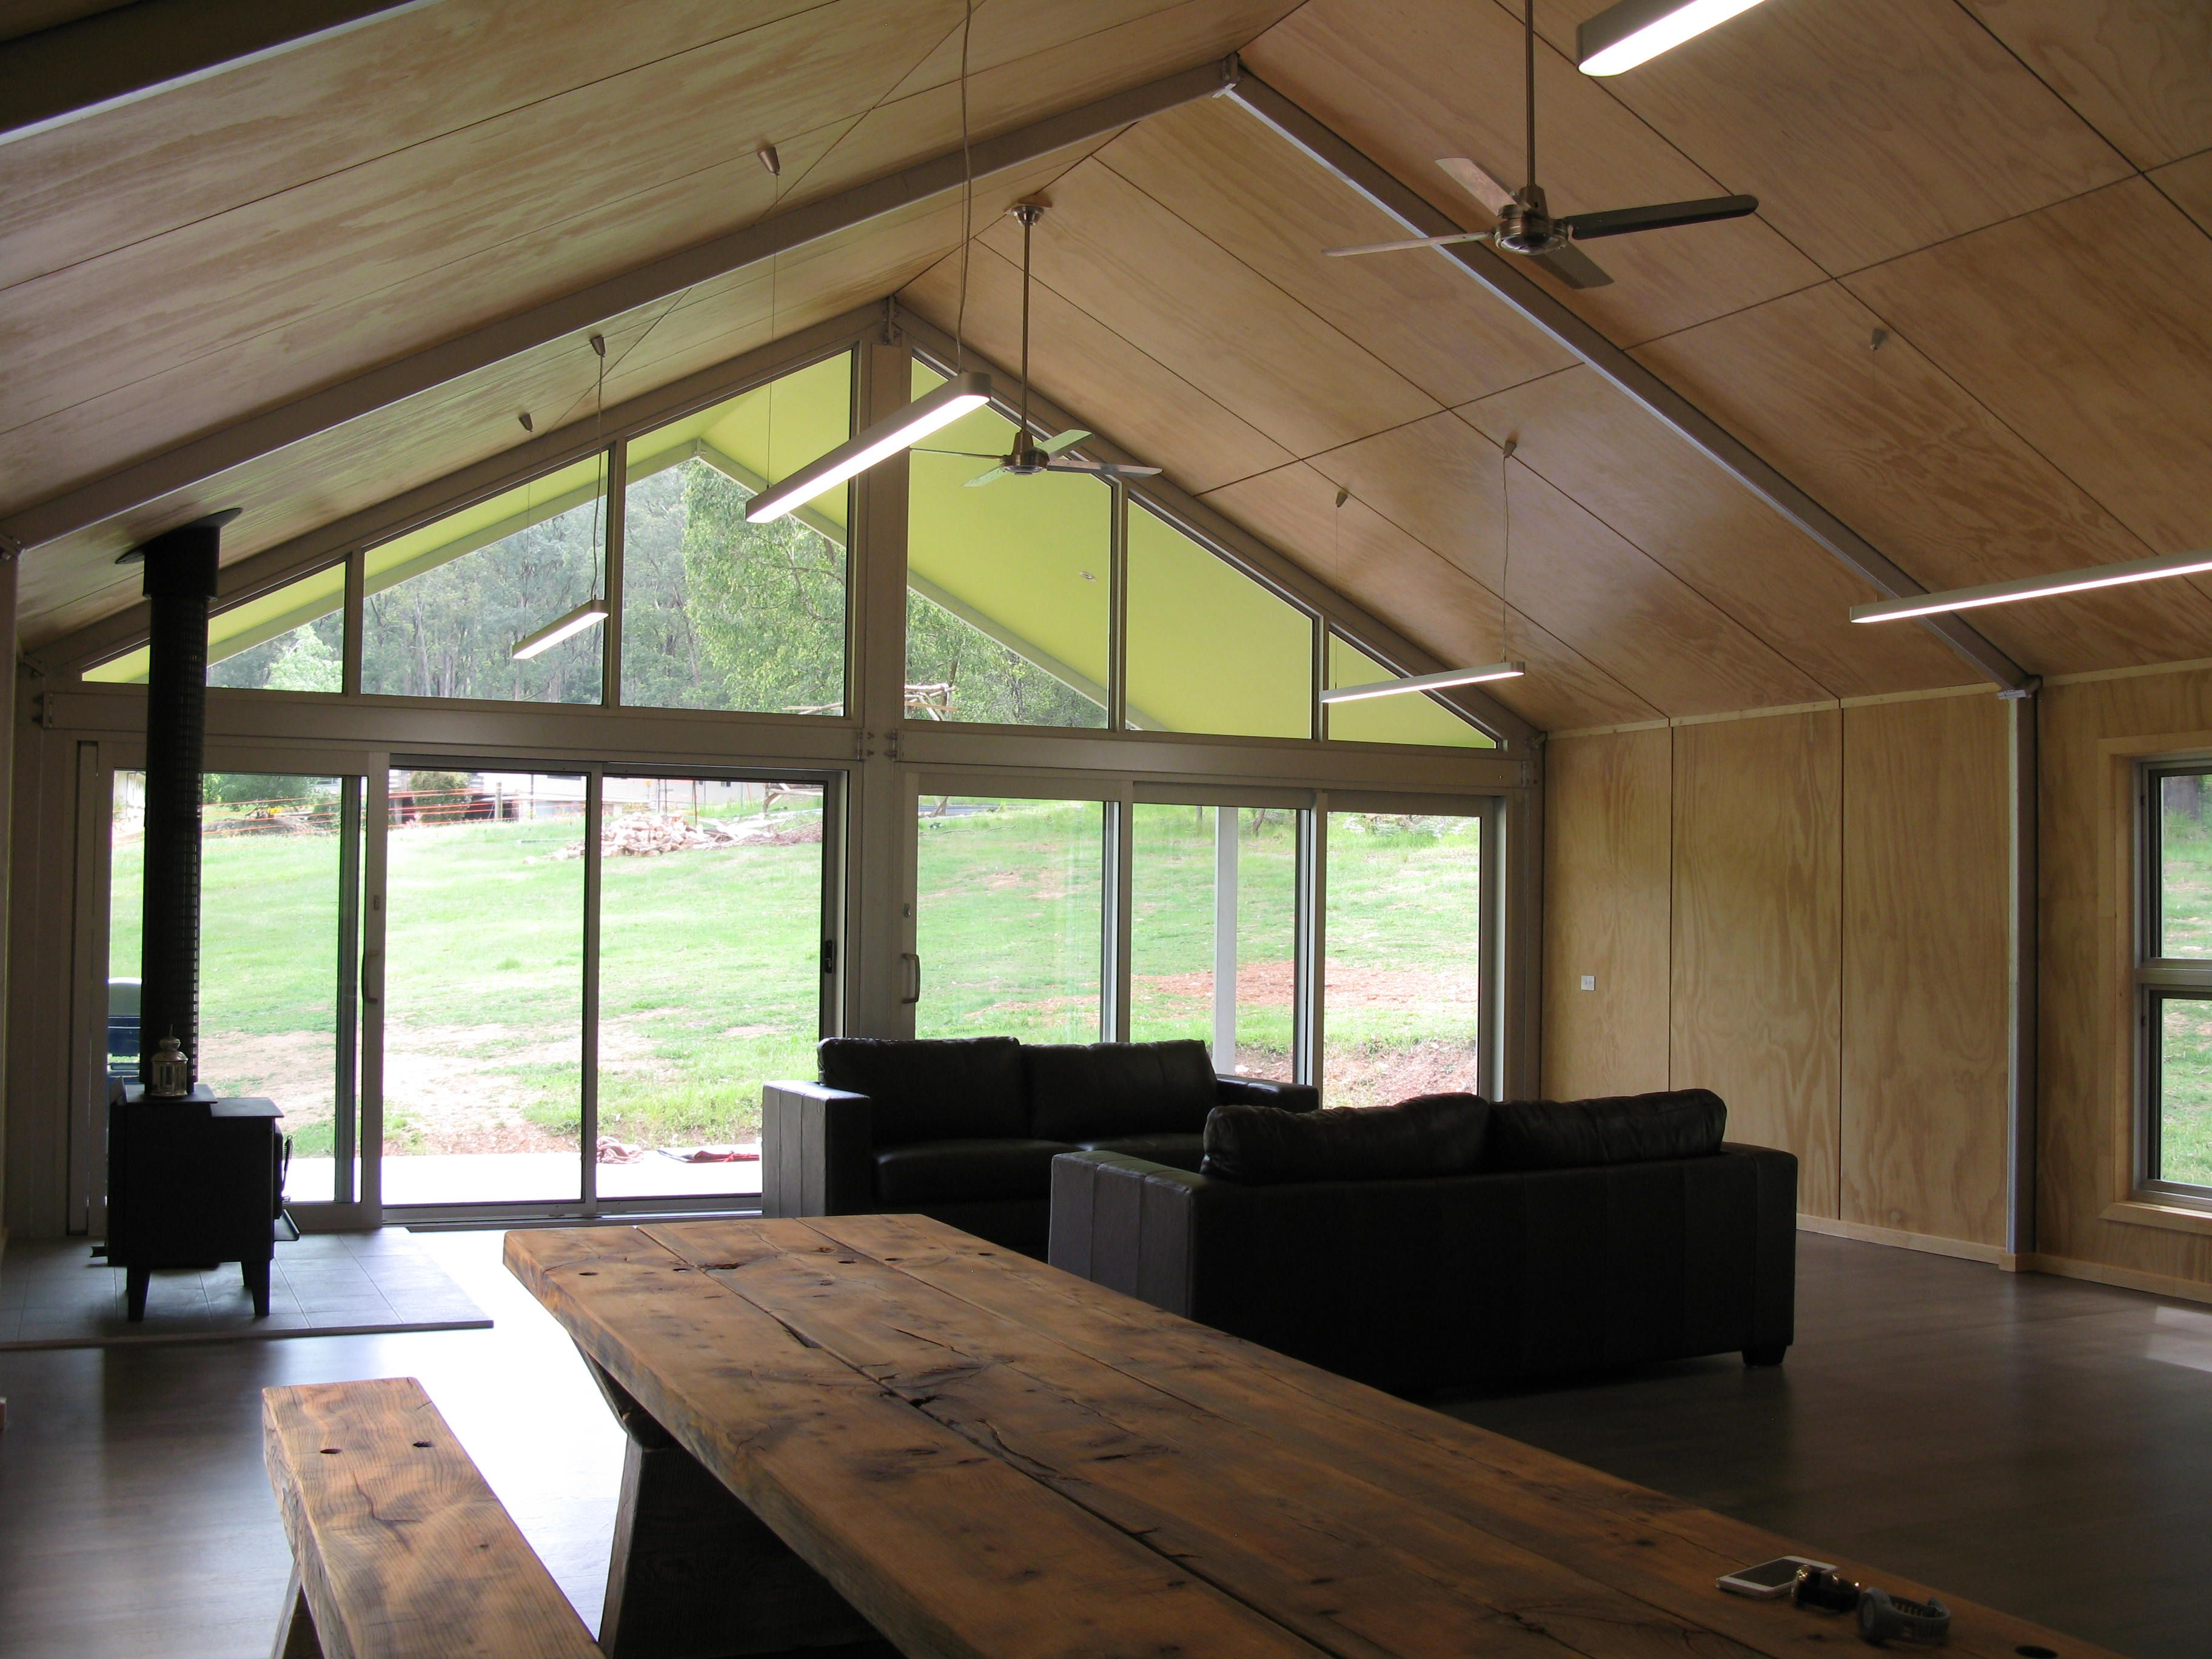 Image result for PORTAL HOUSE ARCHITECTURE HOUSE